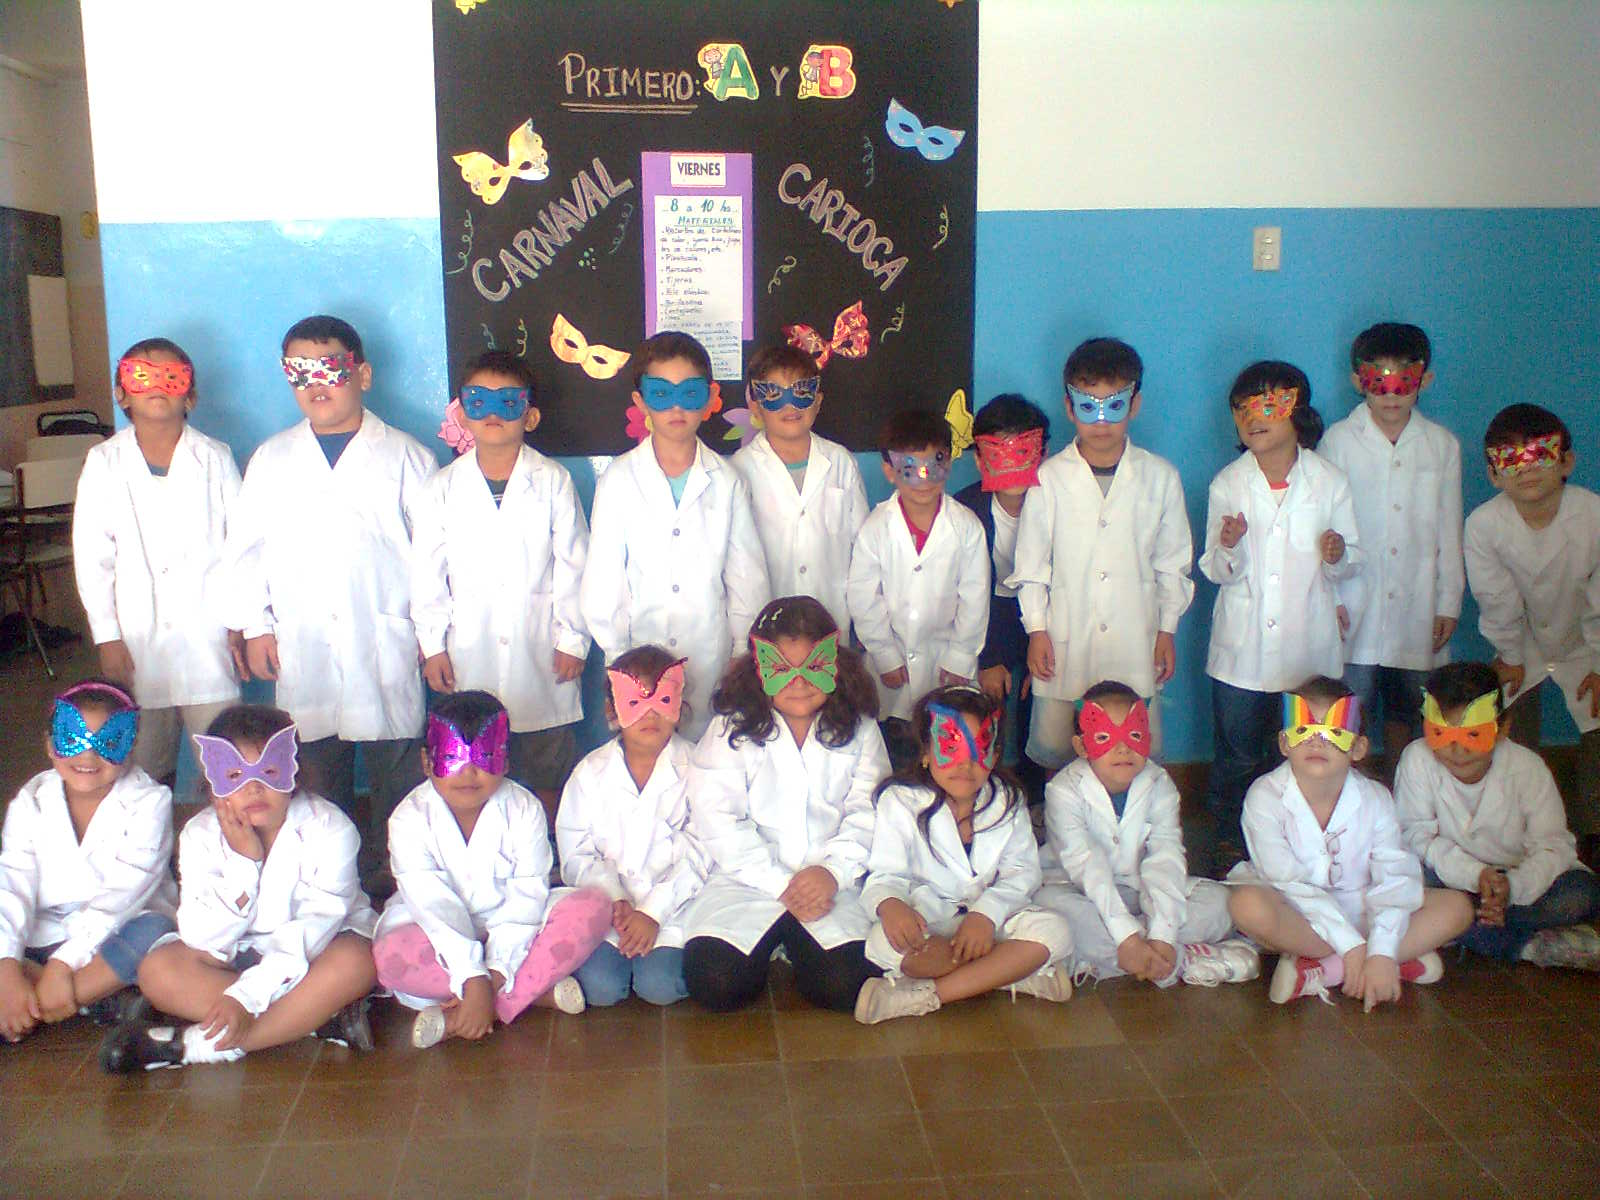 Elementary school students line up wearing lab coats and butterfly masks